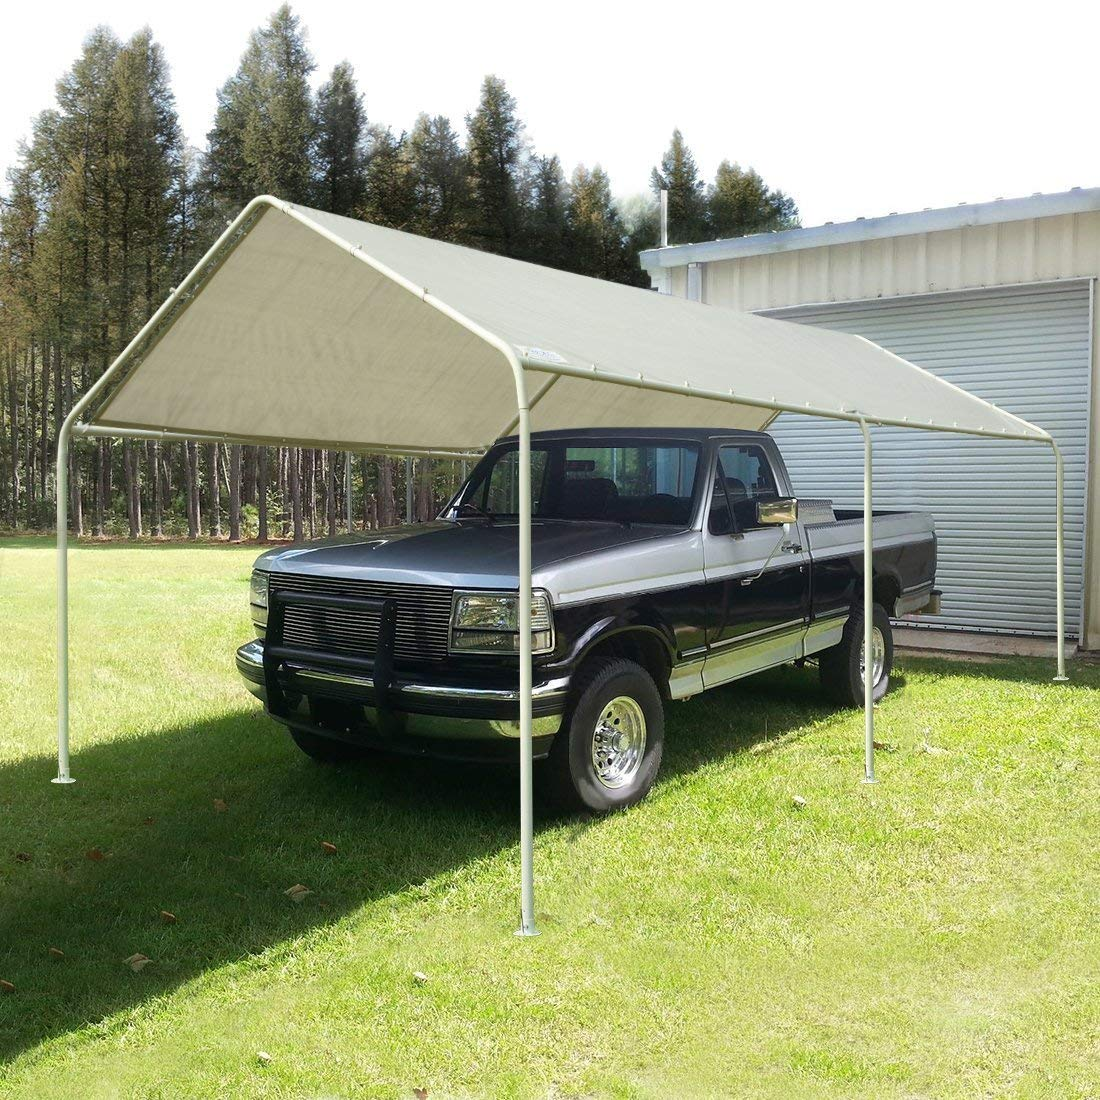 Top 10 Best Car Shelters in 2020 | Buying Guide